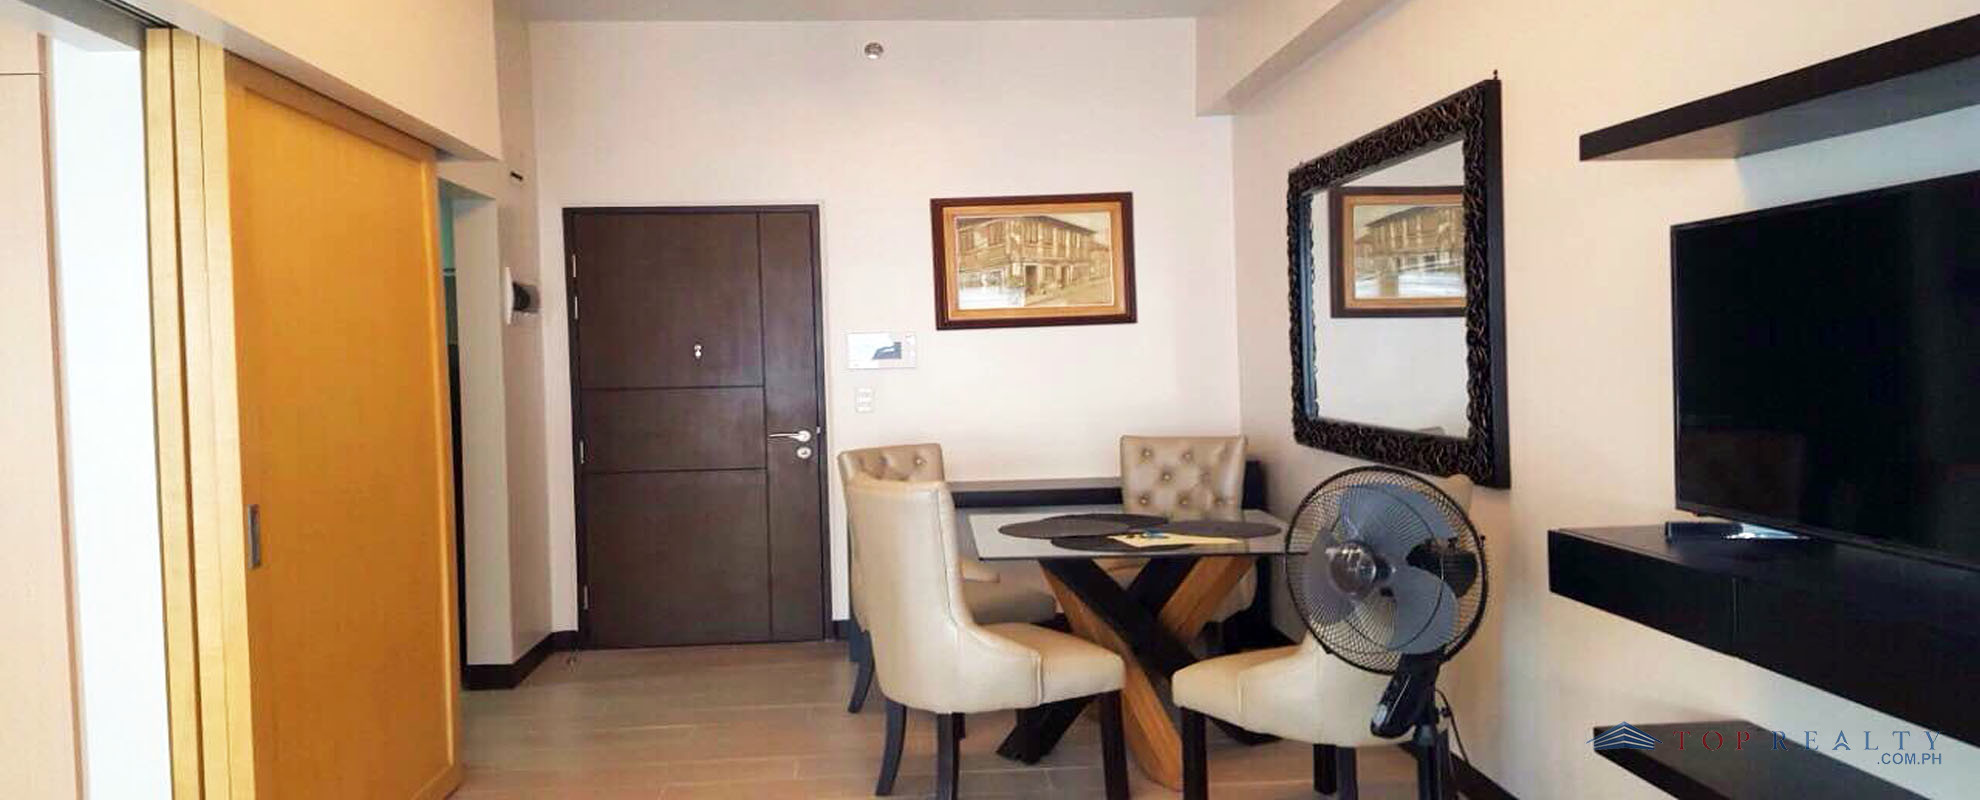 Top Realty Corporation Executive Studio Condo For Rent